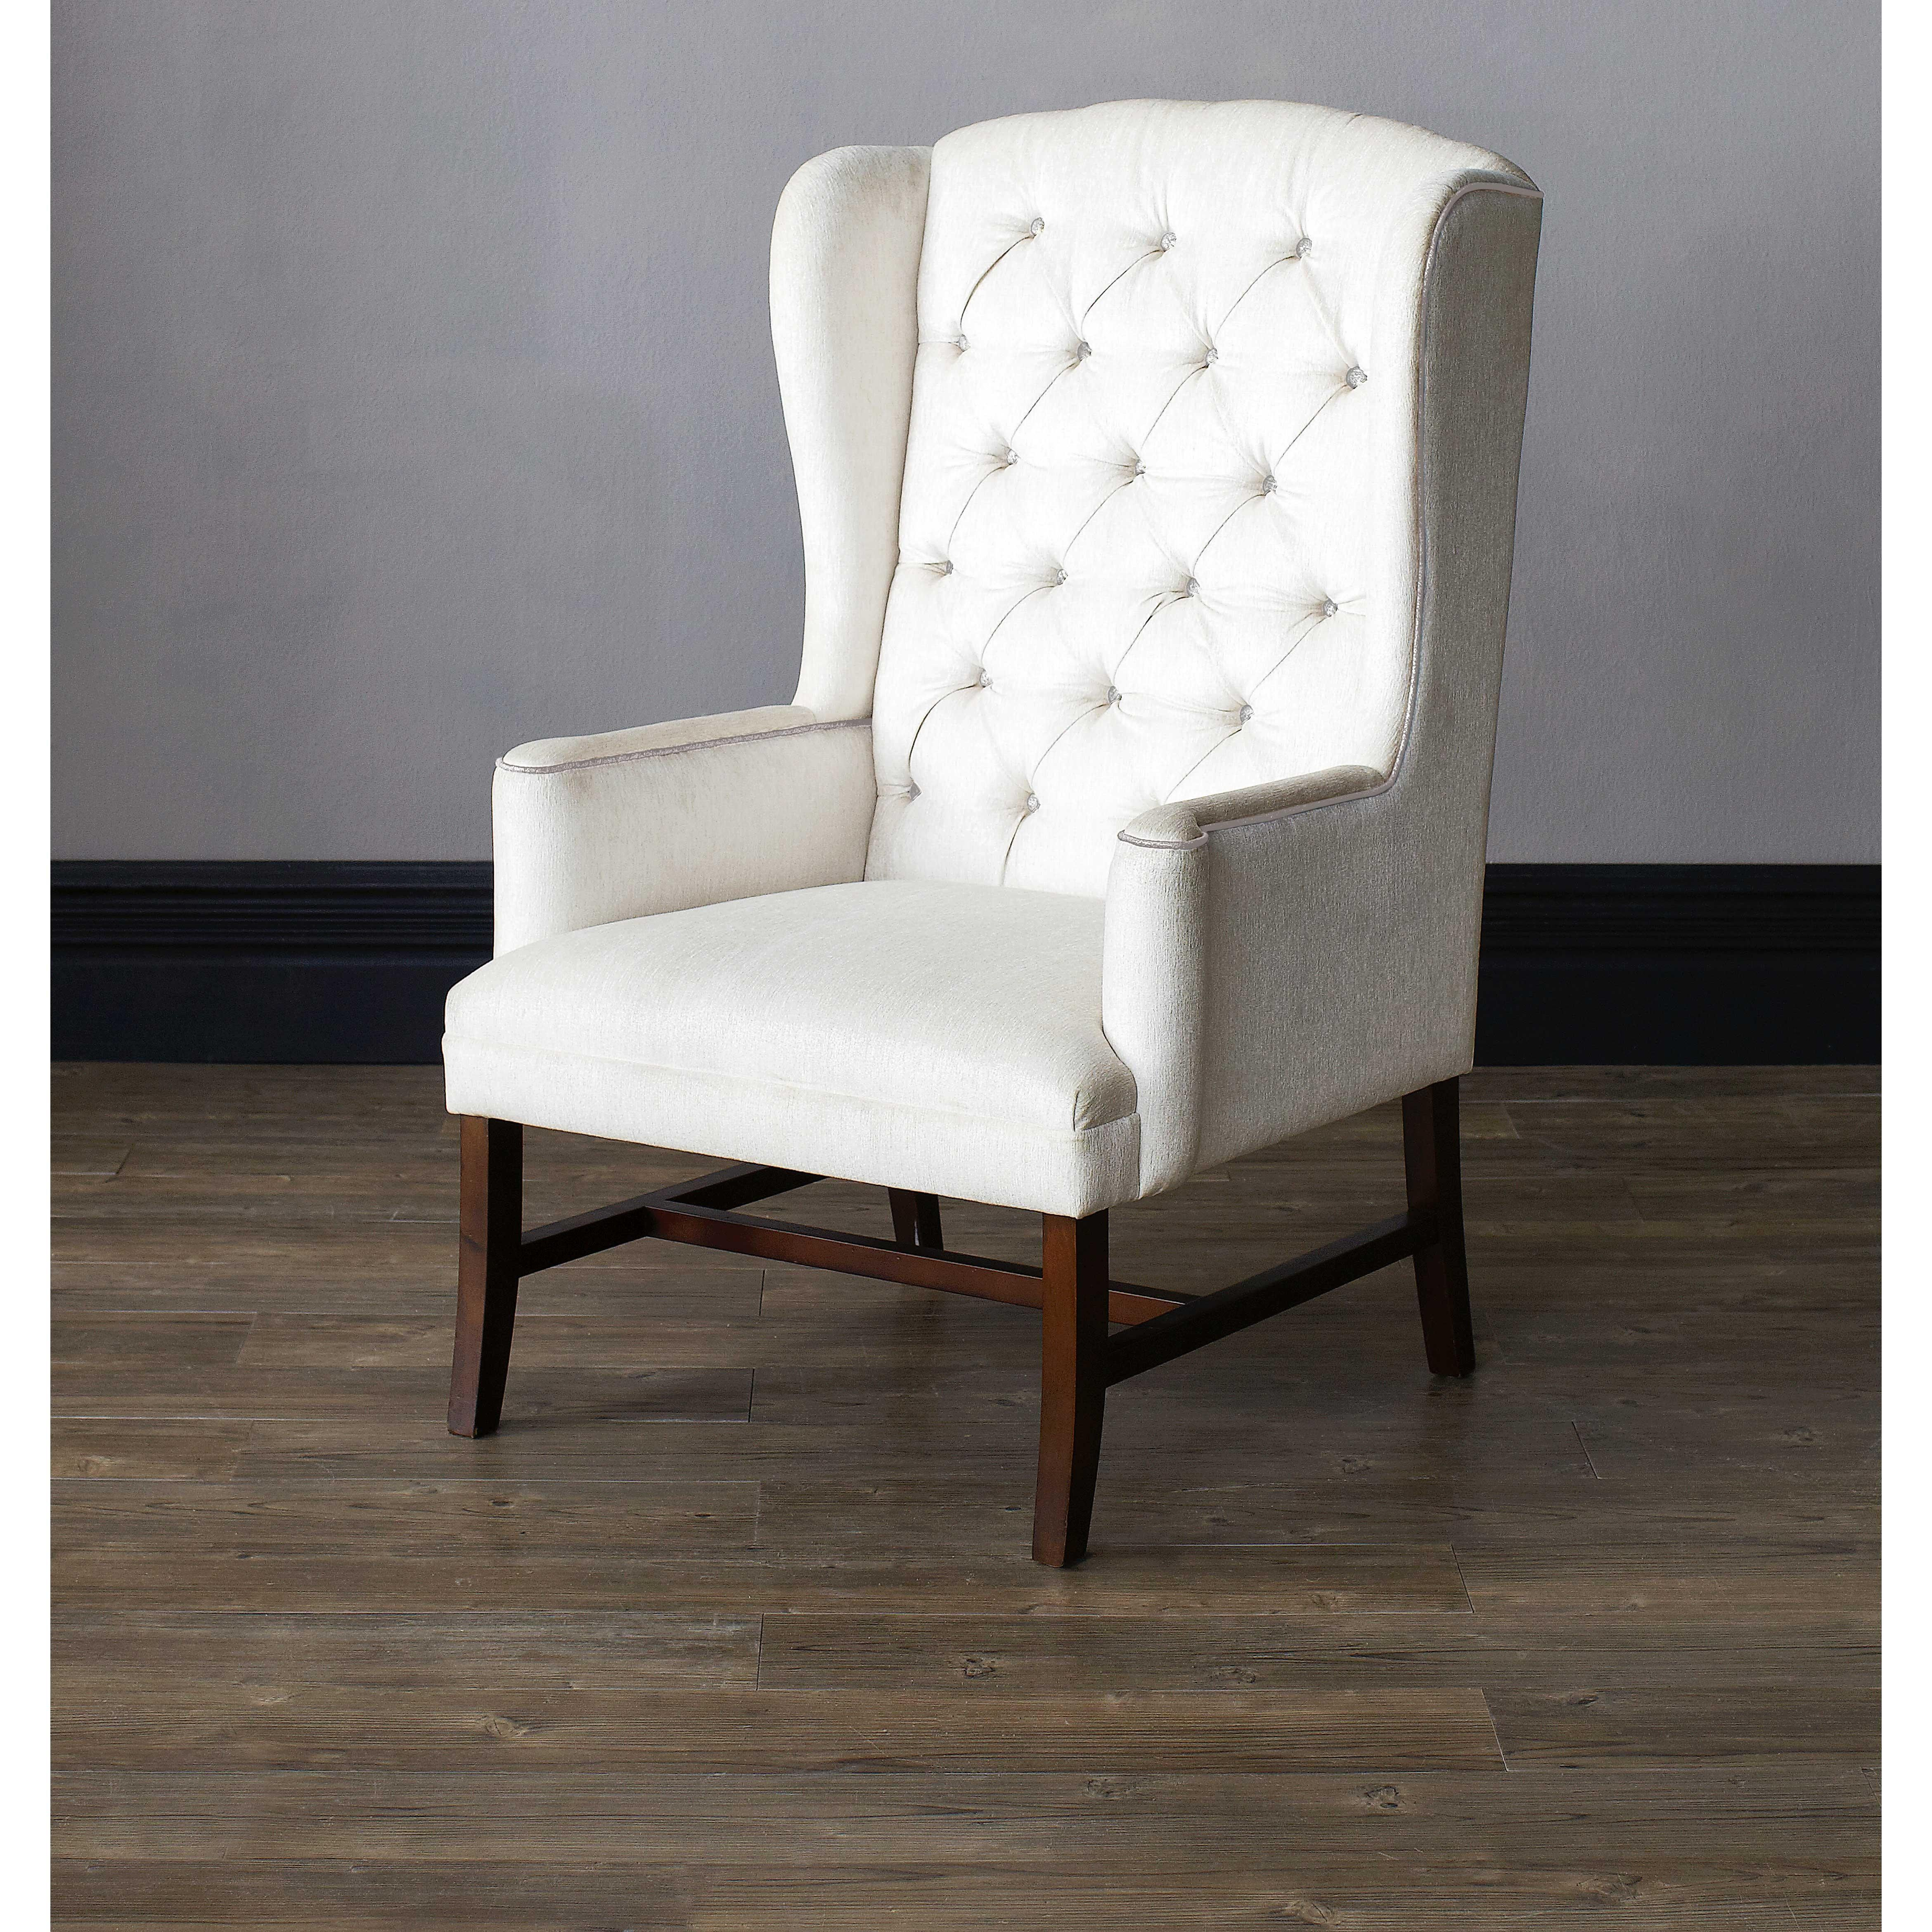 Accent Chair Next To A Full Size Bed: Exuma Chair Harvey Norman - Next To Piano